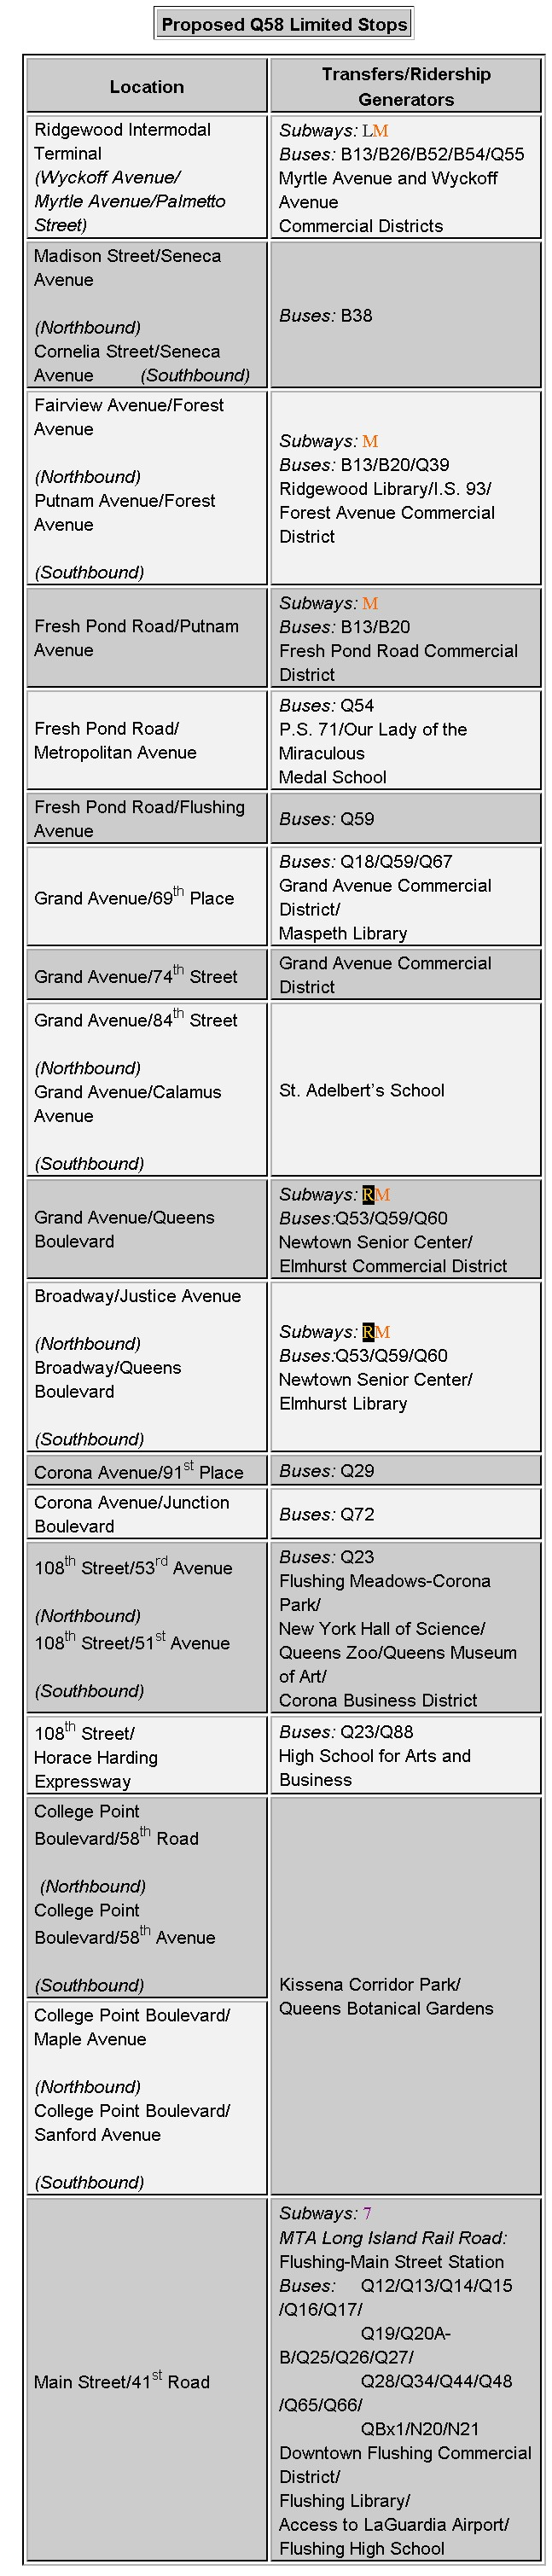 Re: Proposed QM1 - QM1A - QM24 Renumberings (was: Q 58 Limited) on q44 bus map, q17 bus map, new york city bus map, queens bus map, q25 bus map, q70 bus route map, brooklyn bus map, q55 bus map, q64 bus map, q76 bus map, q112 bus map, mta bus map, nyc bus map, q46 bus map, q20 bus map, q84 bus map, q59 bus route map, q83 bus map, q37 bus map, q20a bus map,